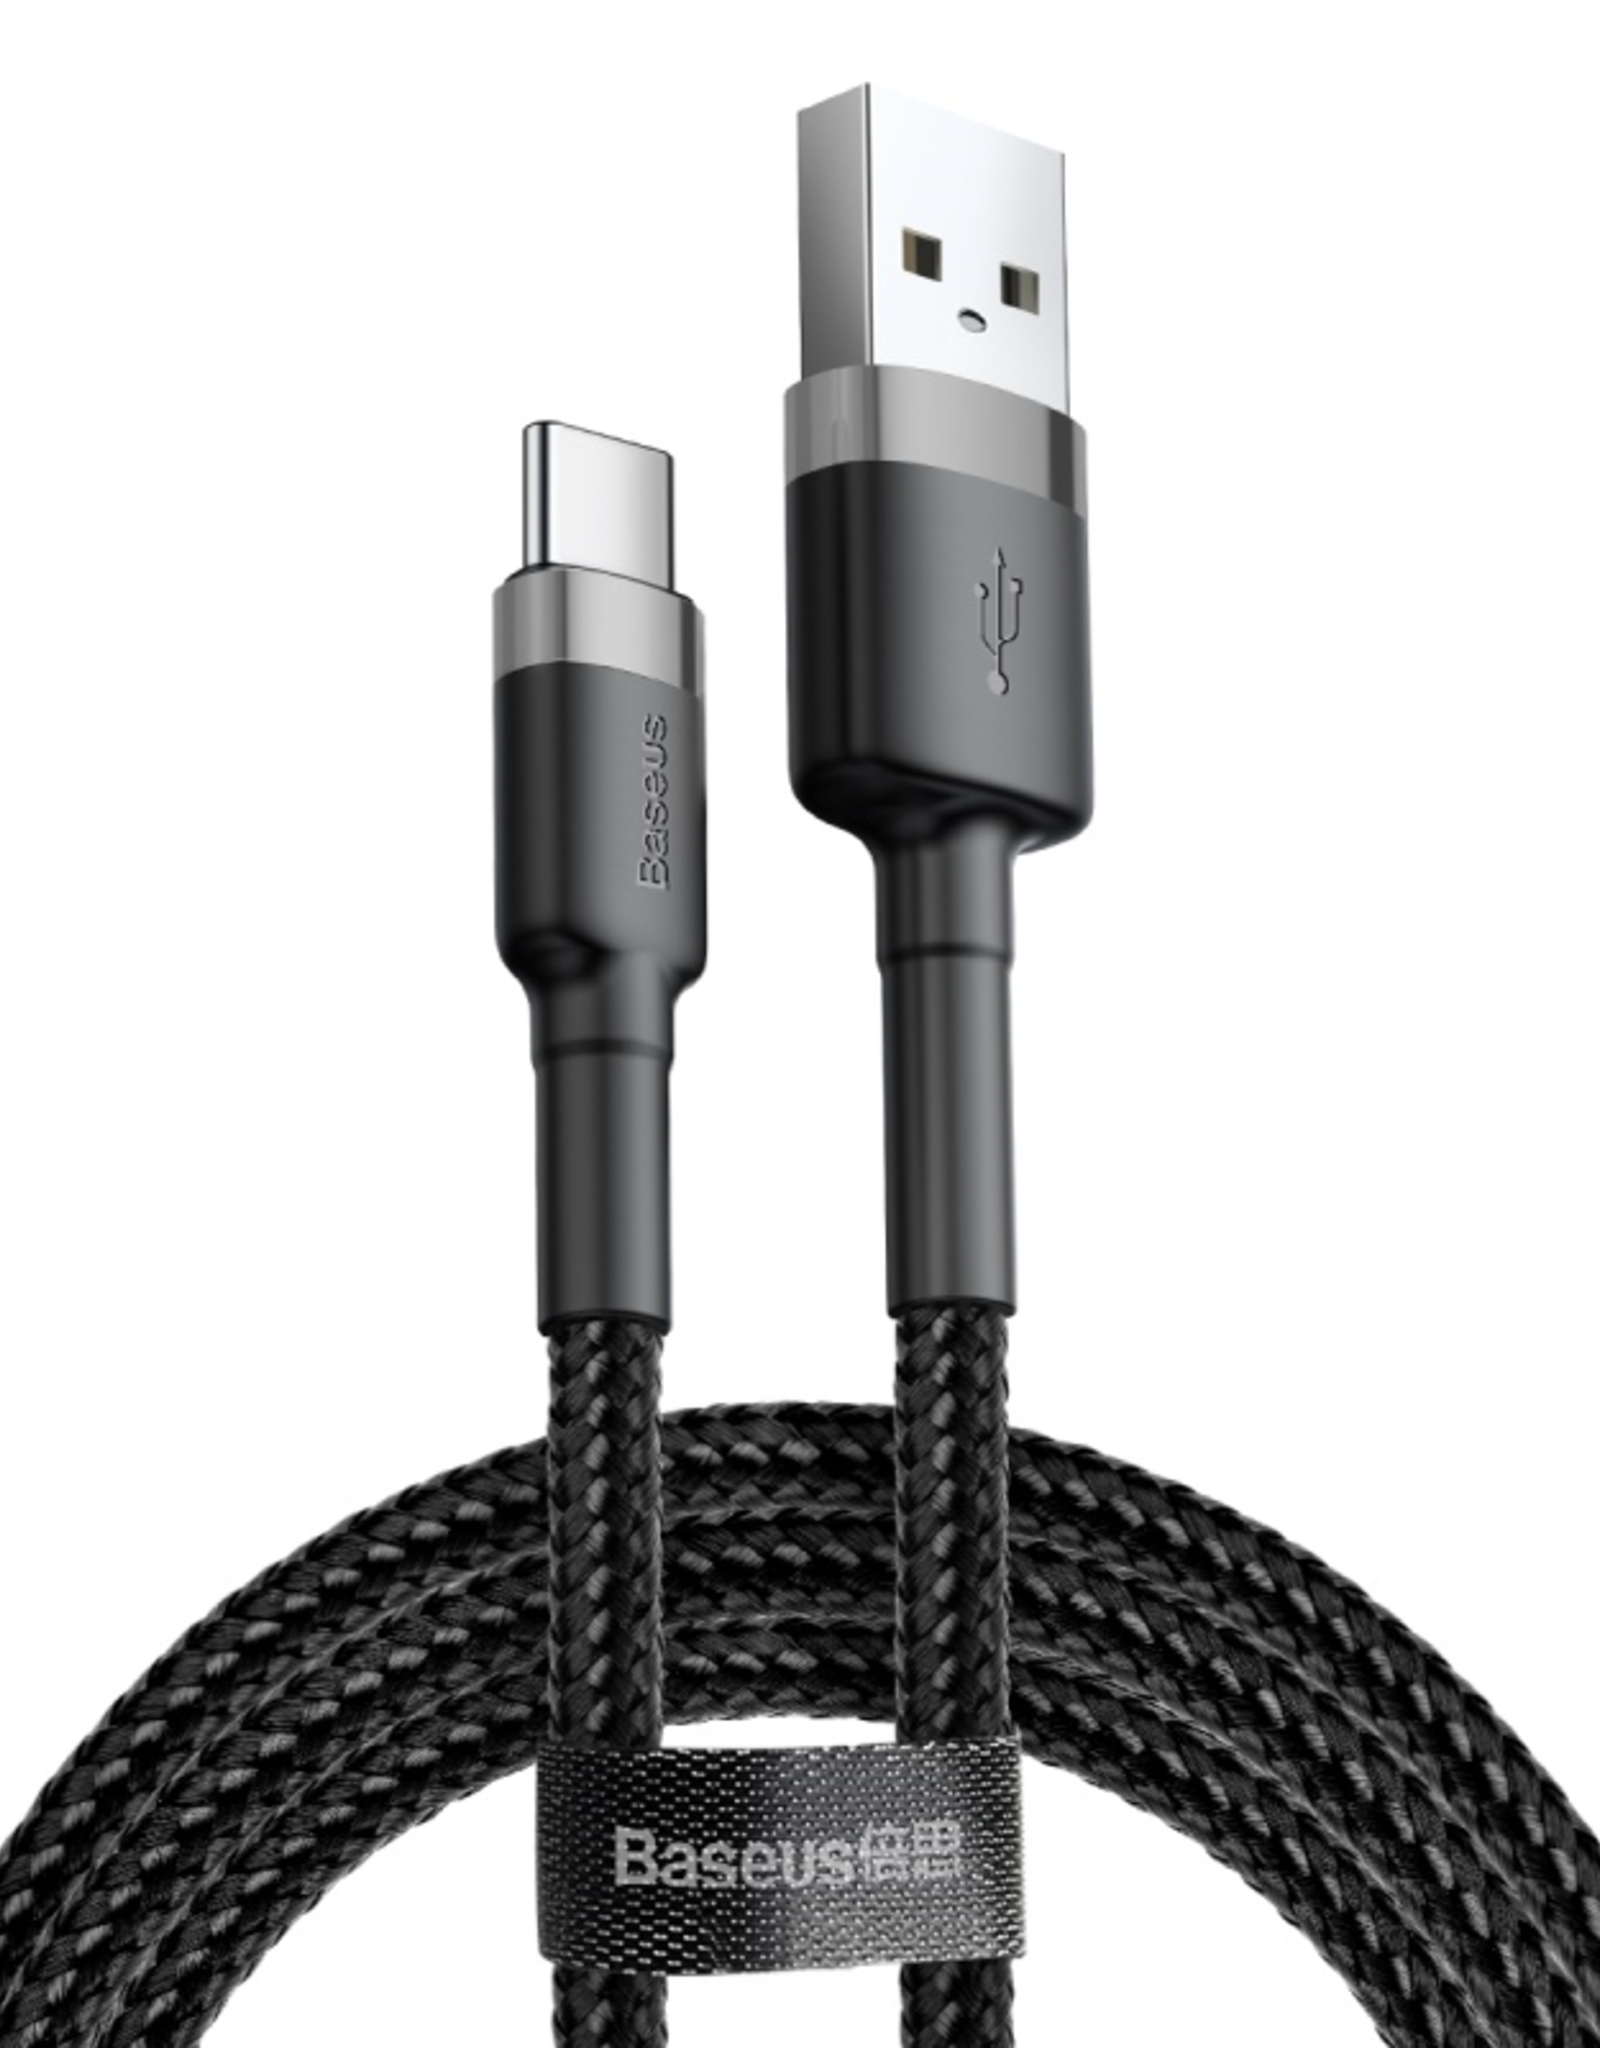 Baseus Baseus Cafule Cable USB For Type-C 2A 3m Gray+Black